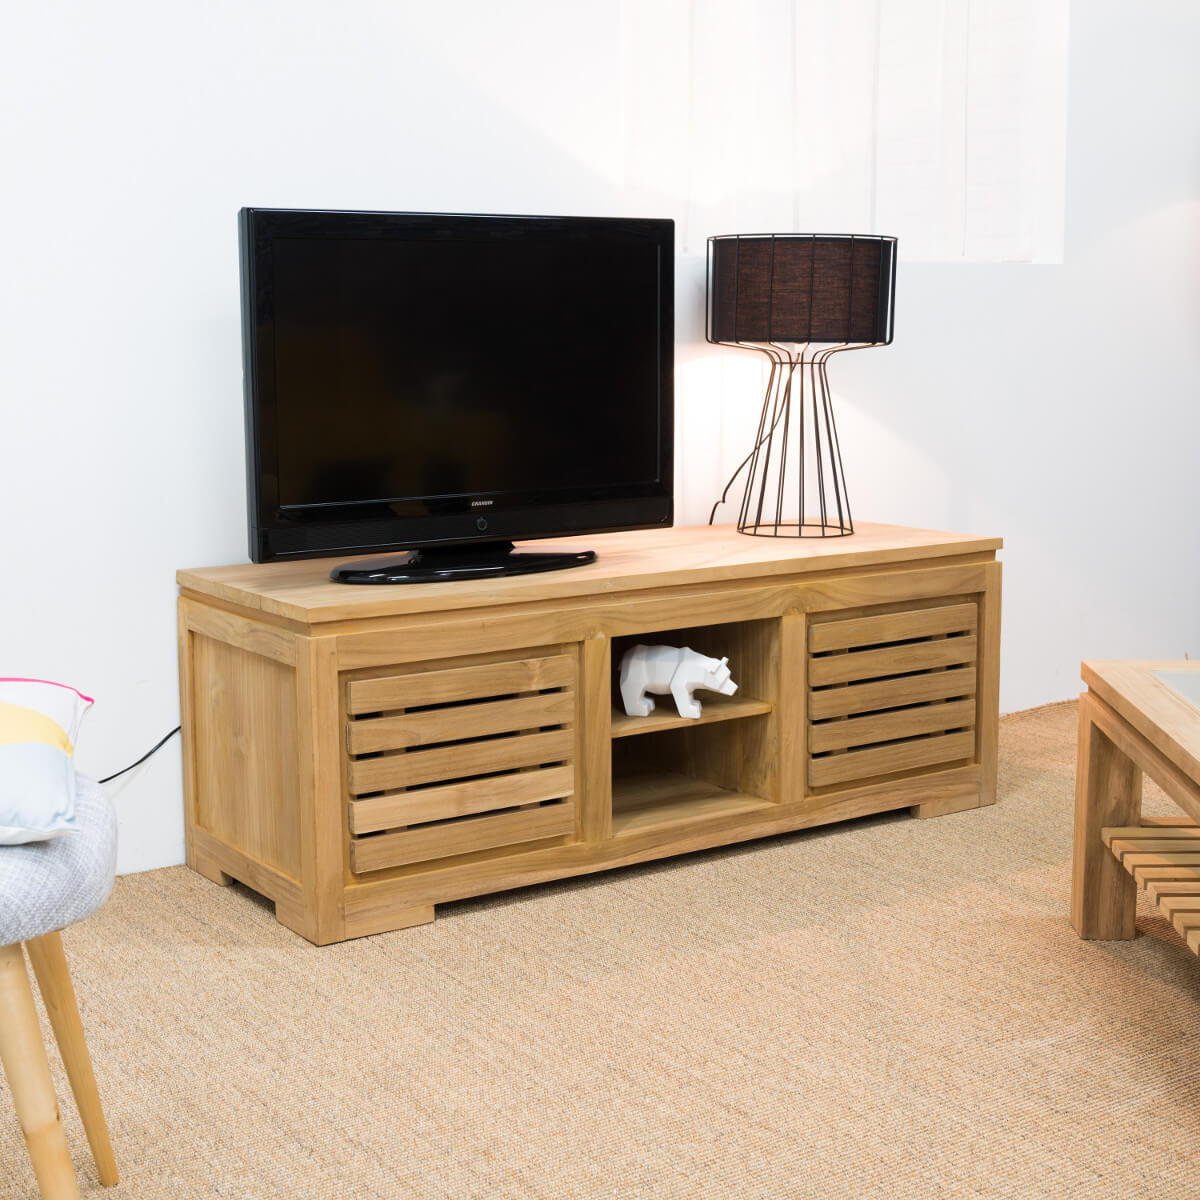 Meuble tv teck meuble tv bois naturel rectangle zen for Meuble cabine de plage en bois